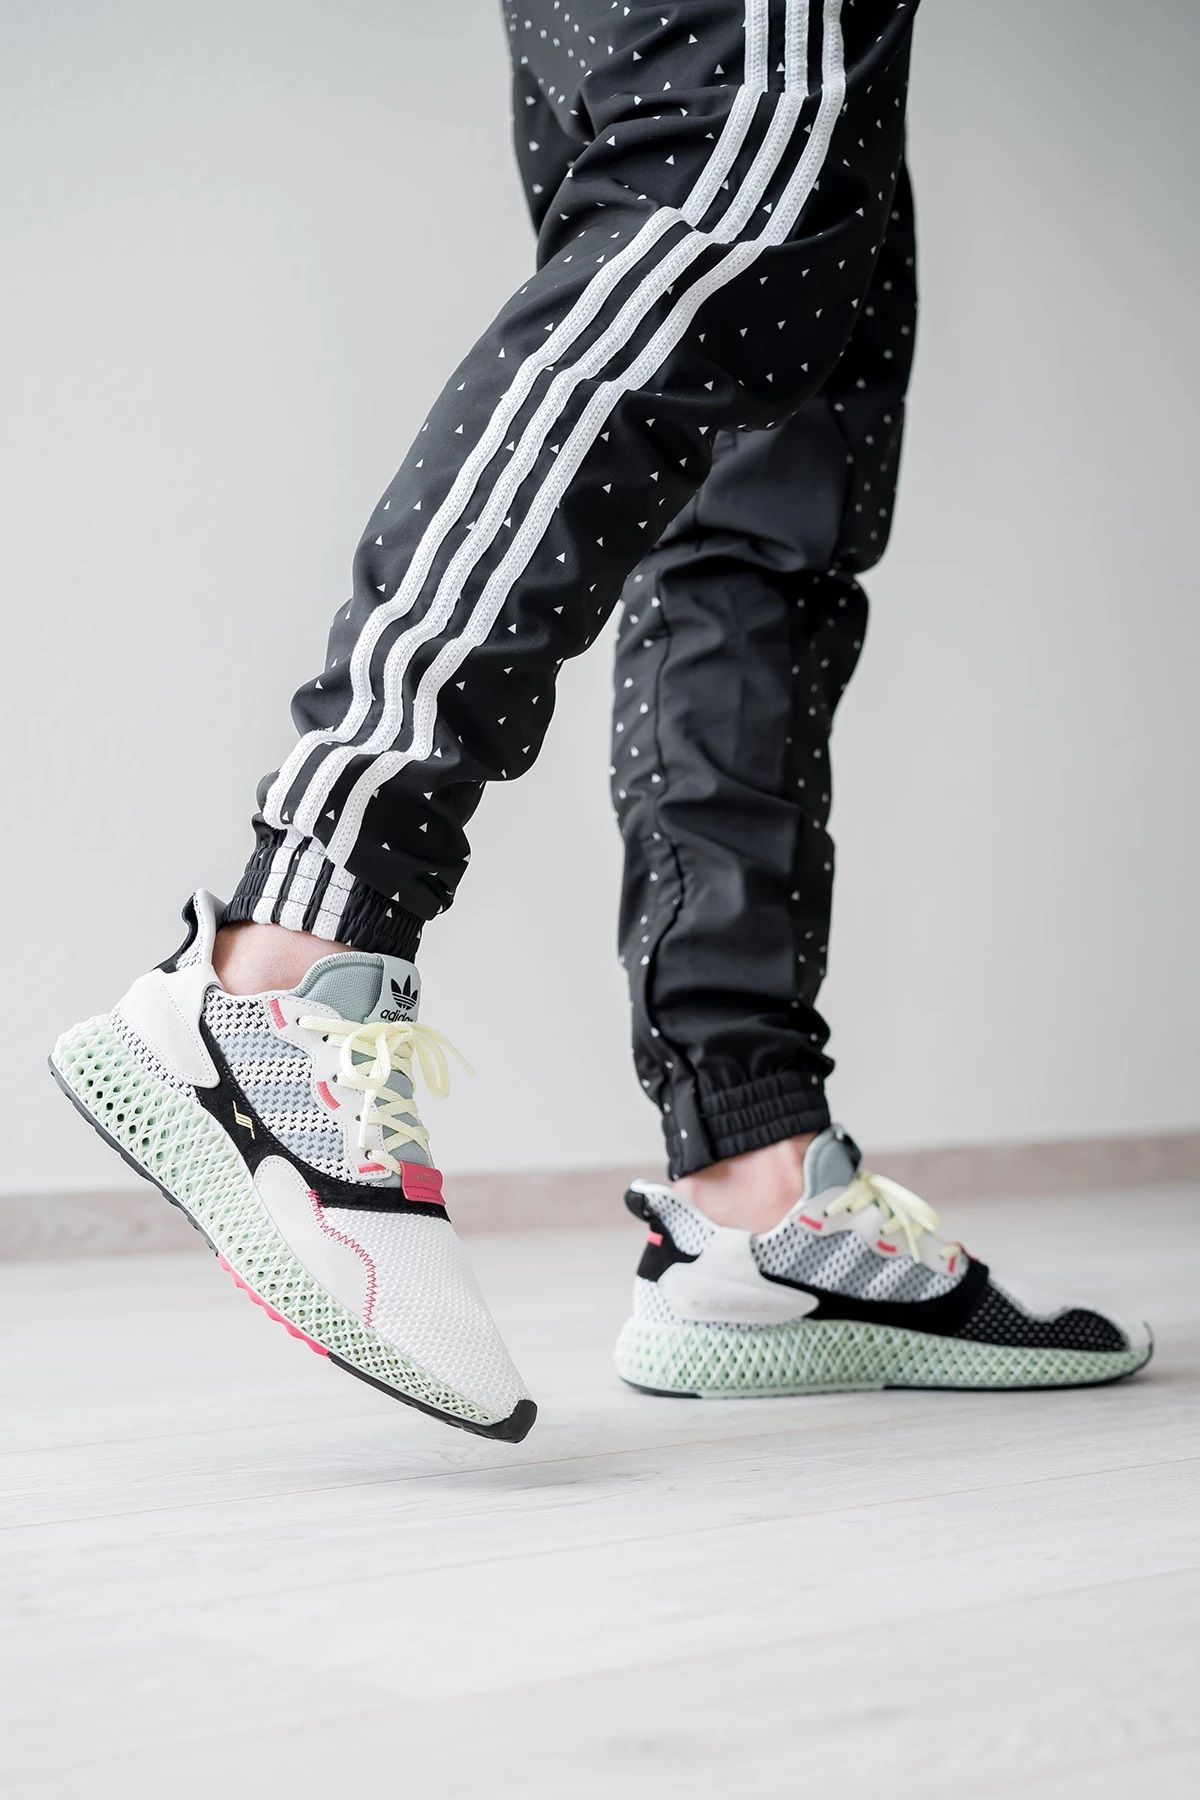 bfa041885 adidas Originals ZX 4000 4D